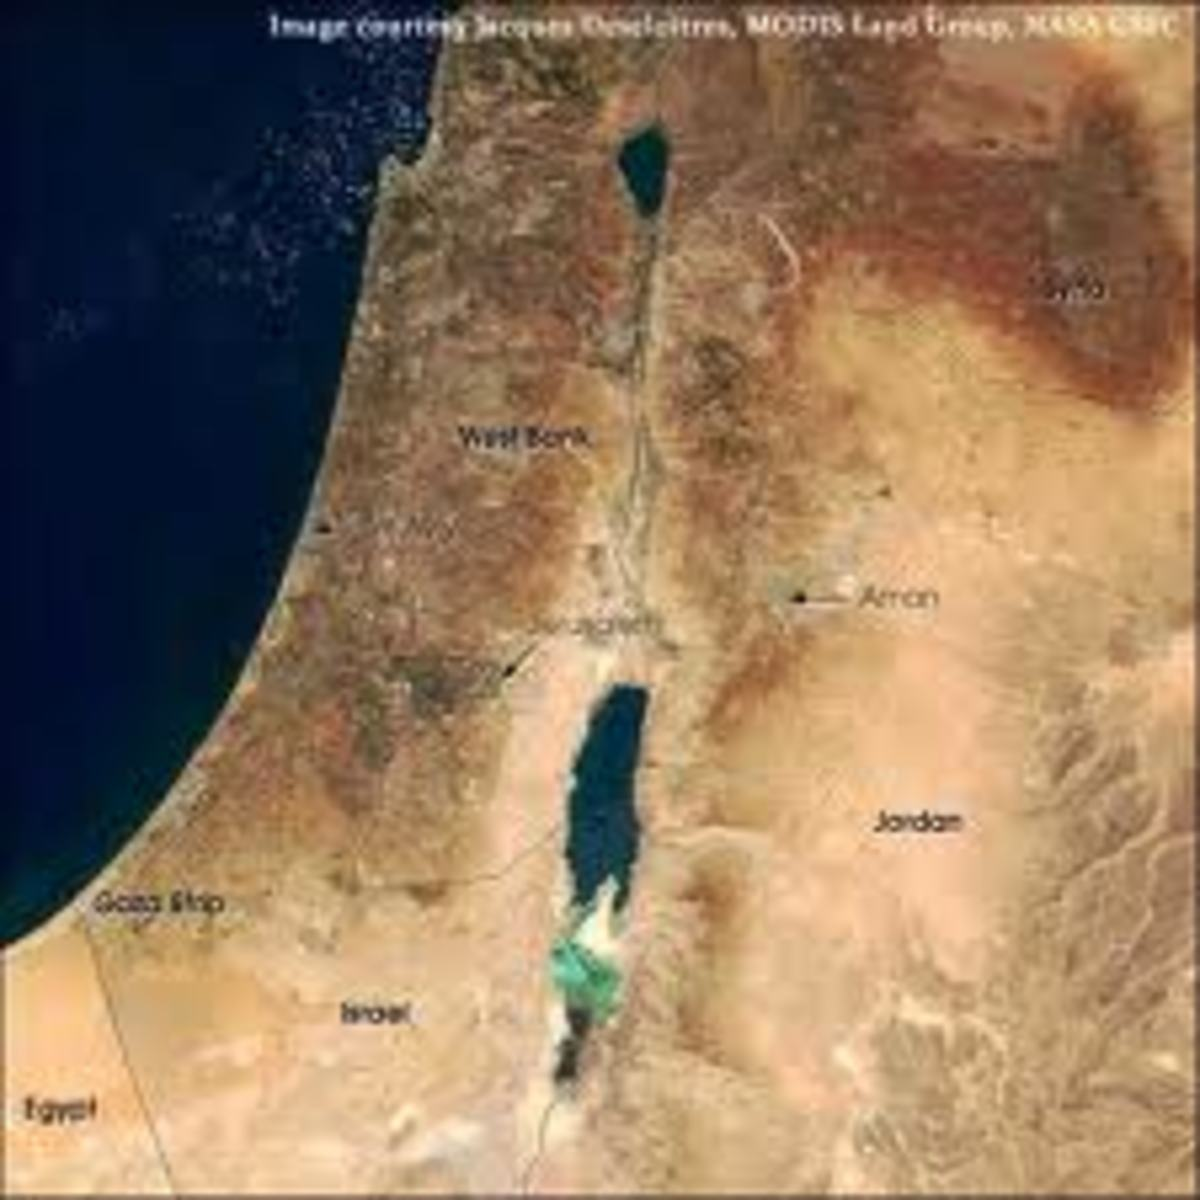 Look at the picture, you can almost see that the Dead Sea is much lower than the Mediterranean sea on the left.